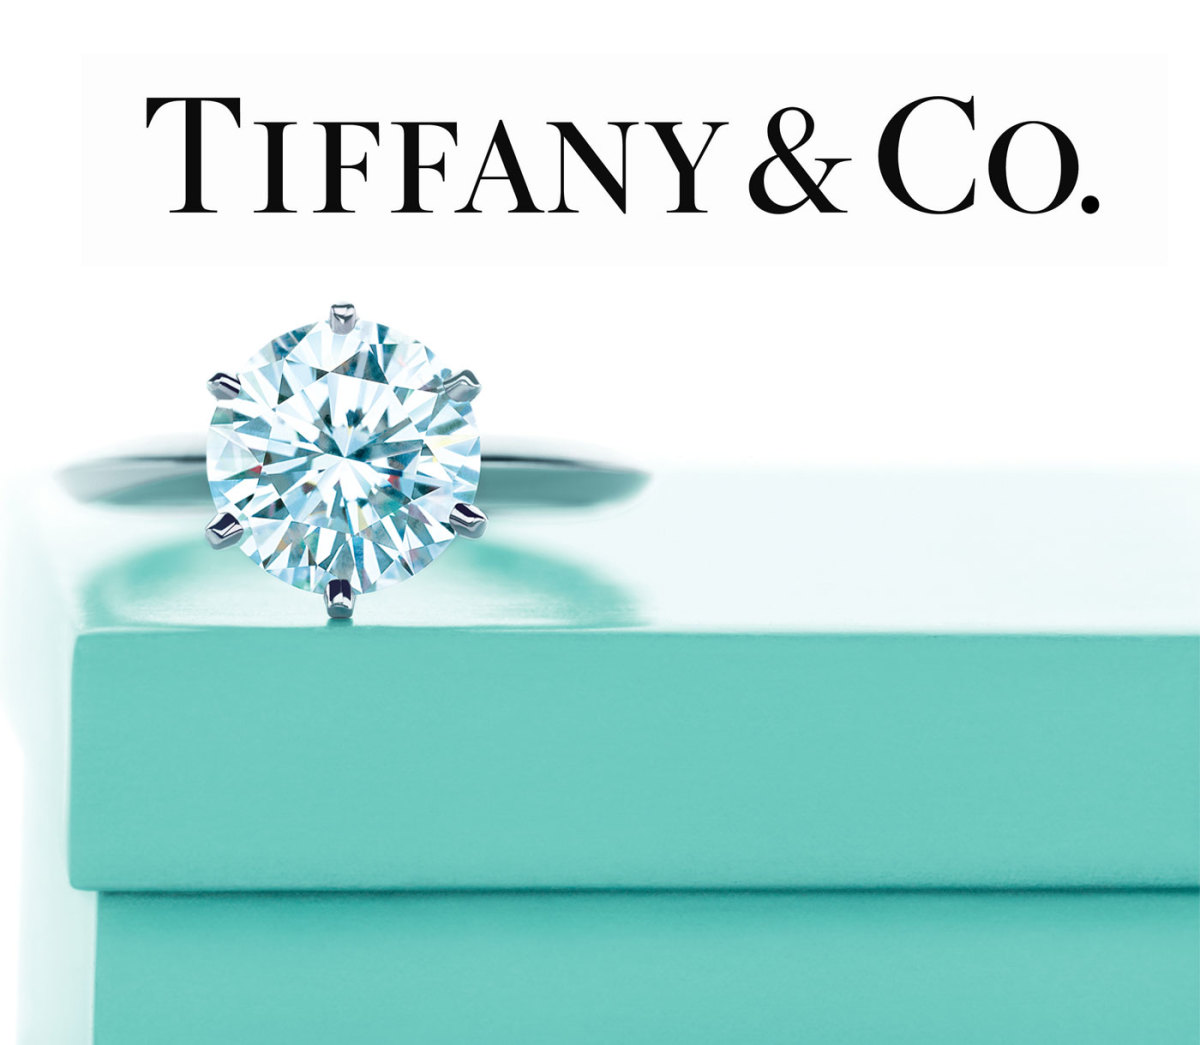 How much do you really know about this famous jewelry company? Learn some interesting facts about Tiffany & Co. in this article.